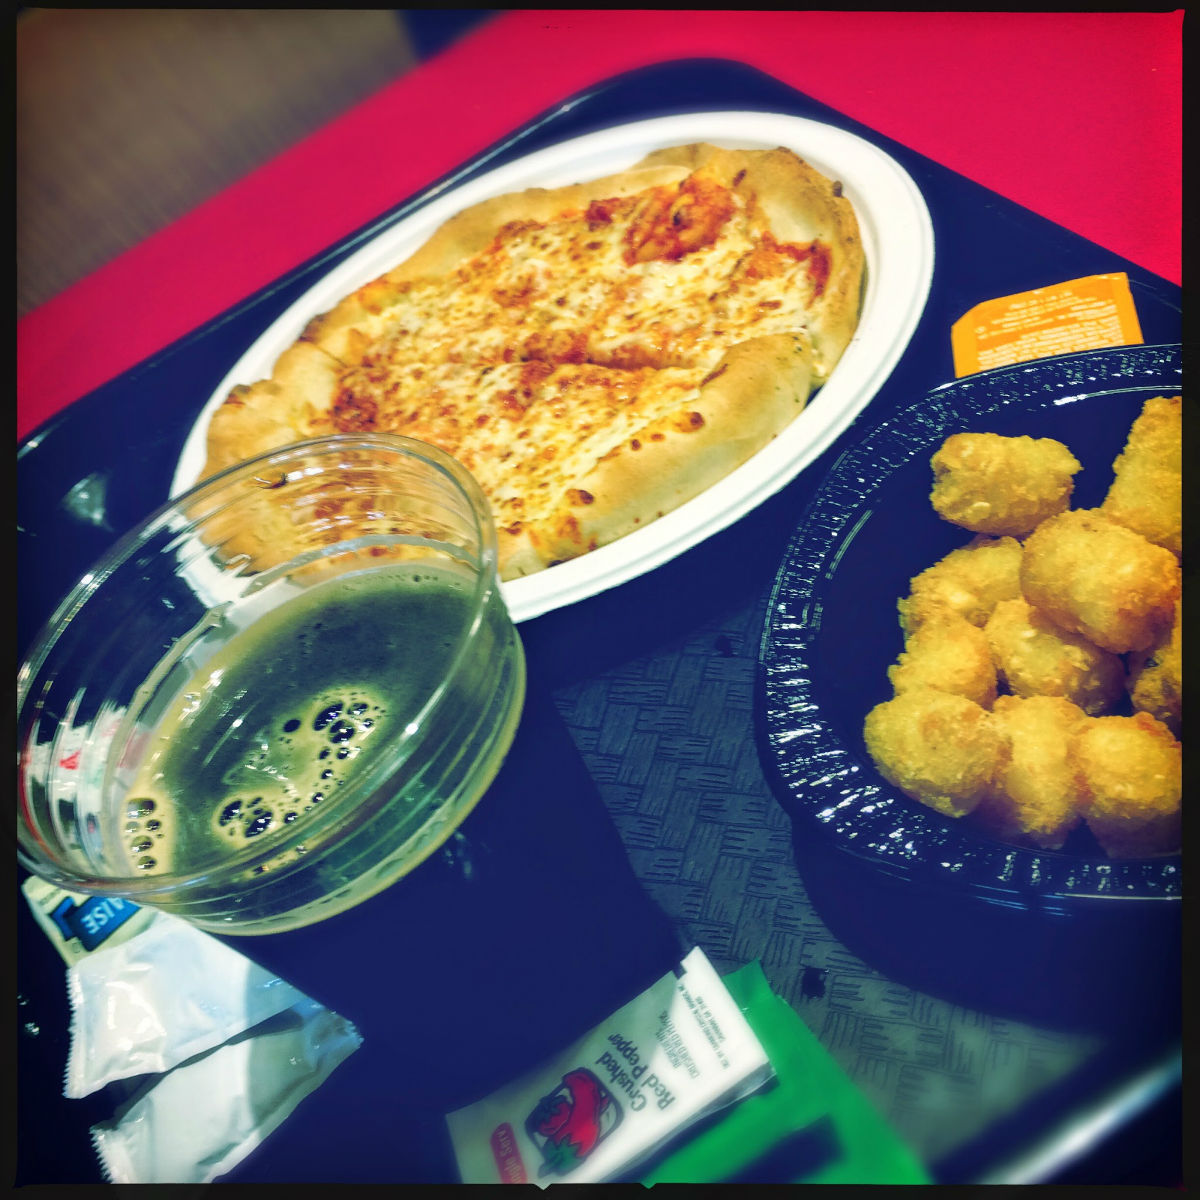 DisneyHipsters_PizzaFastFoodBlvd